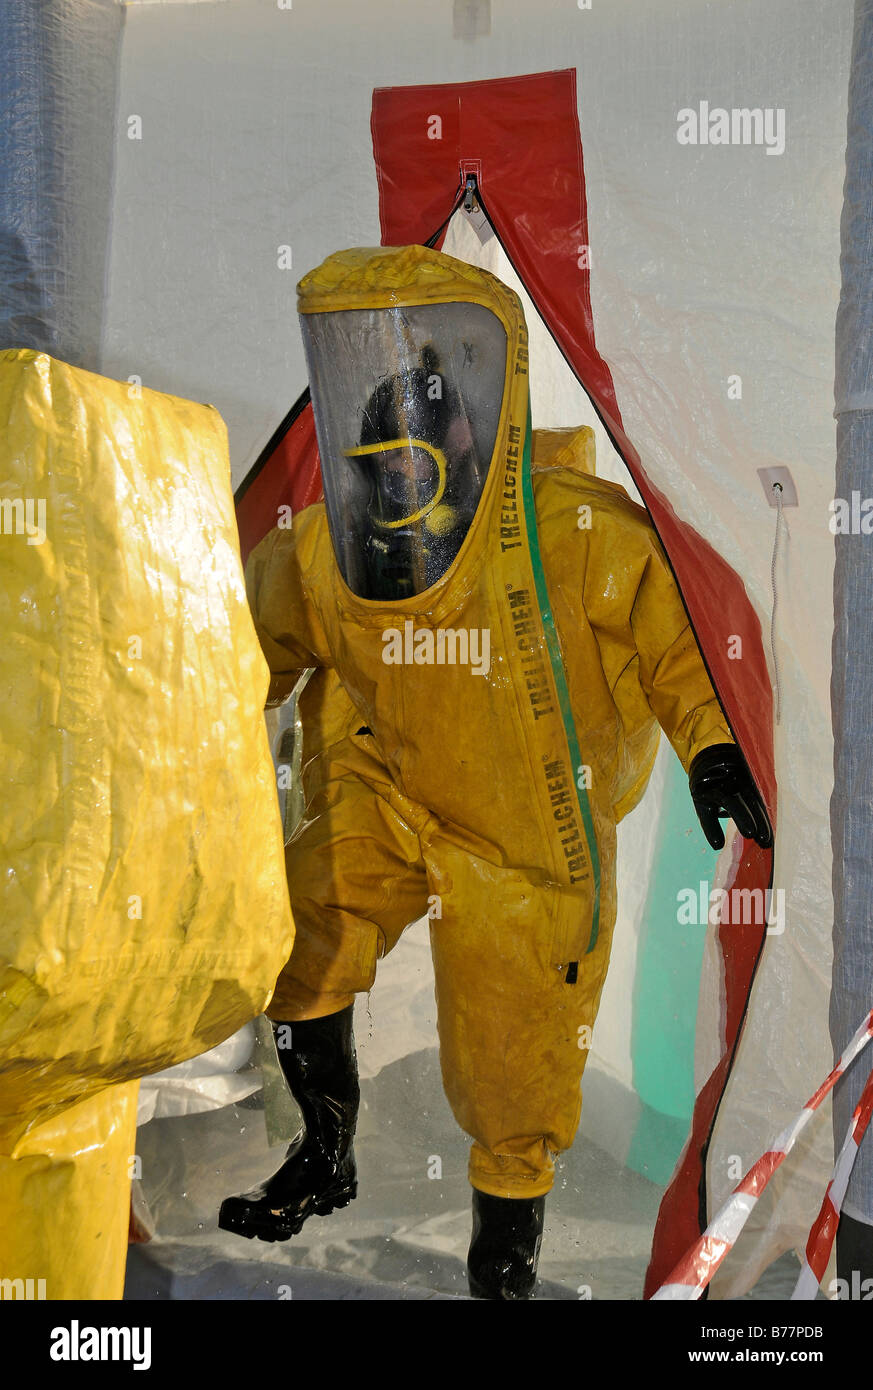 Fire crew in decontamination shower - Stock Image